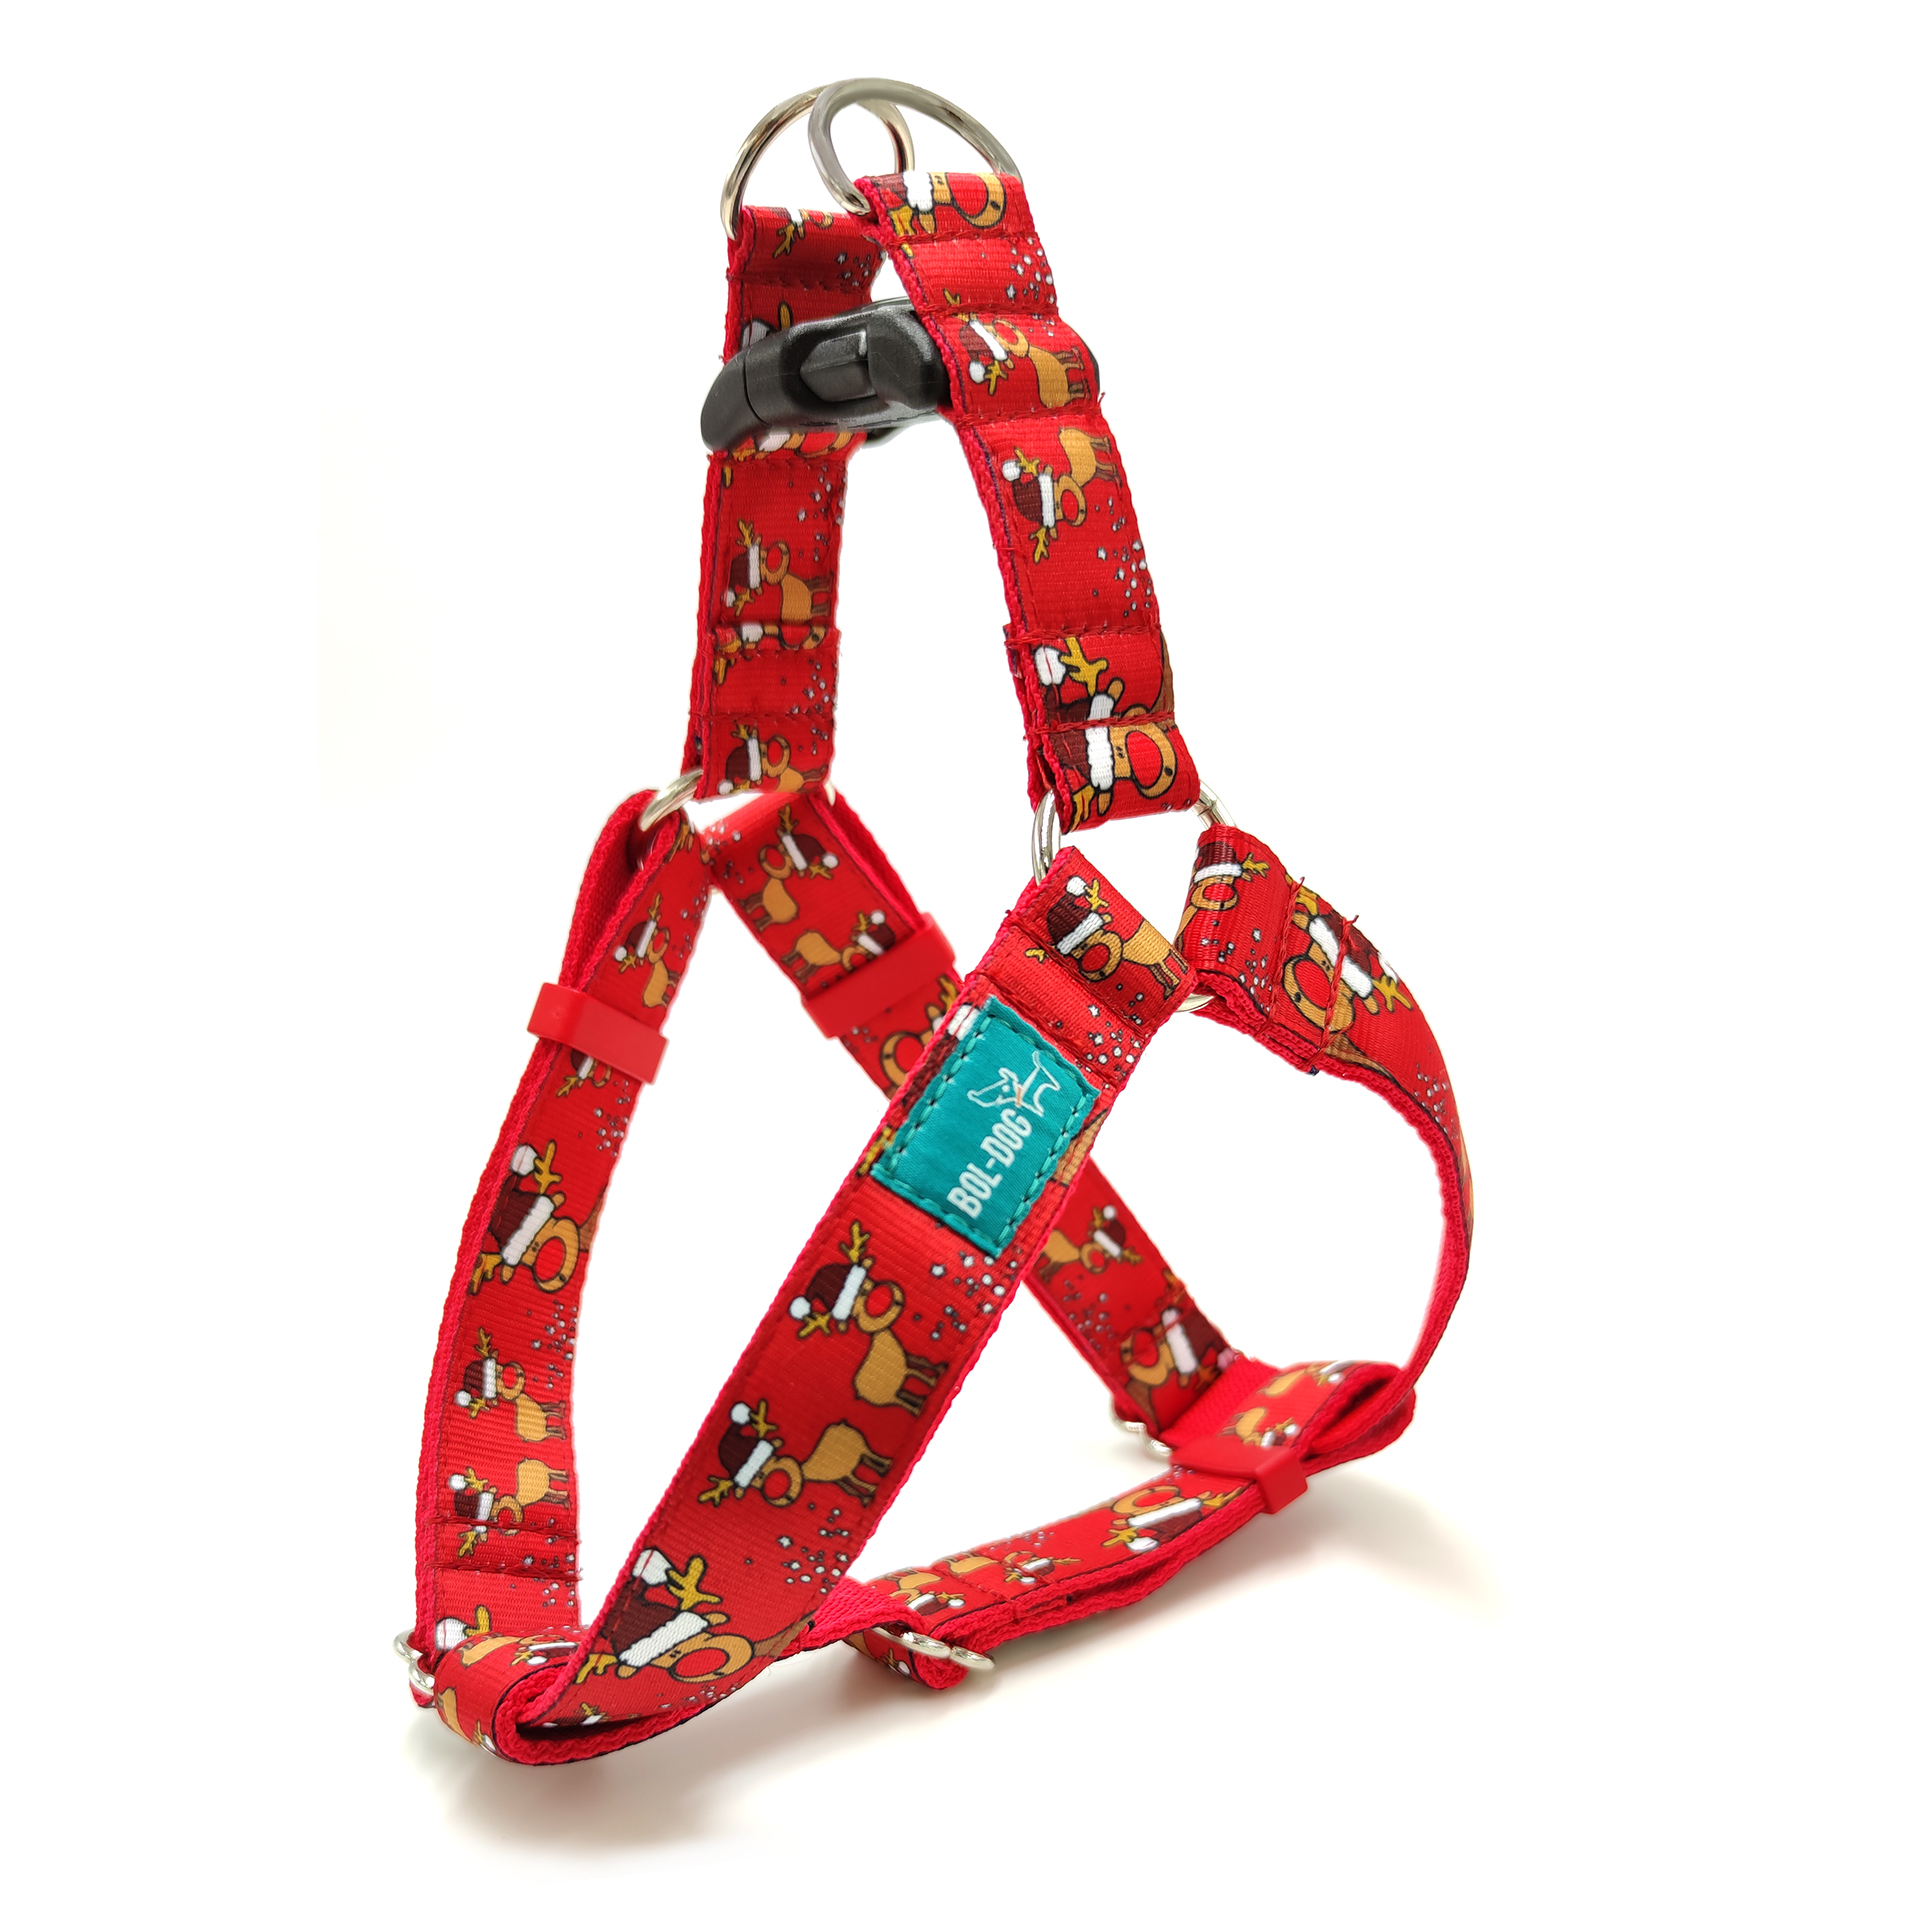 Rudolph red dog harness